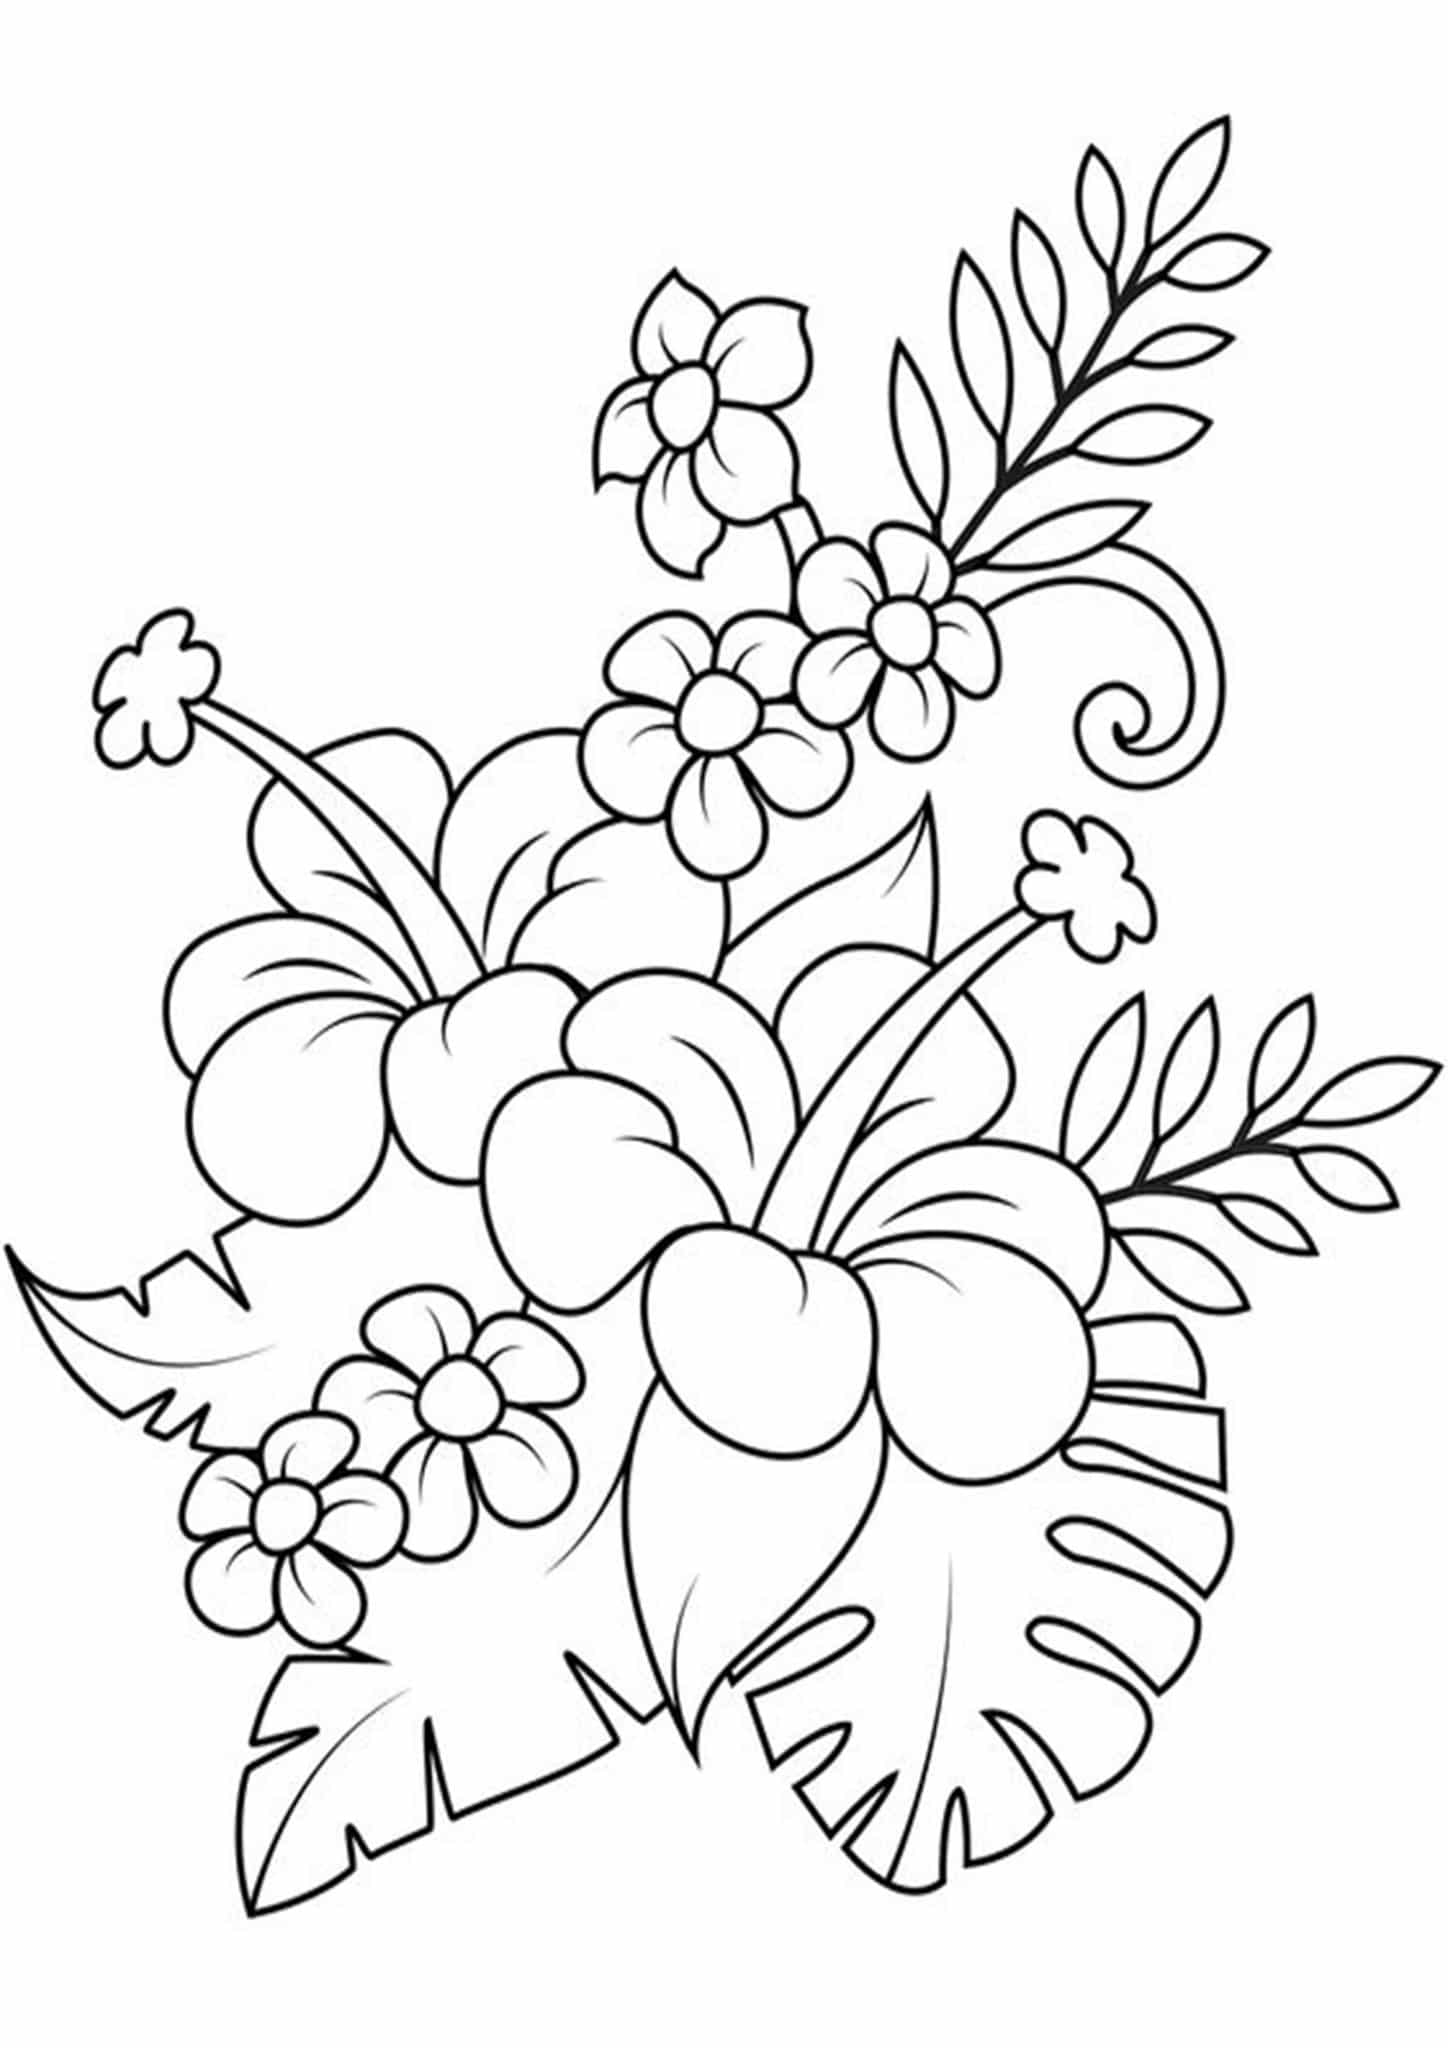 picture of flowers to print lily flower coloring pages download and print lily flower flowers of to picture print